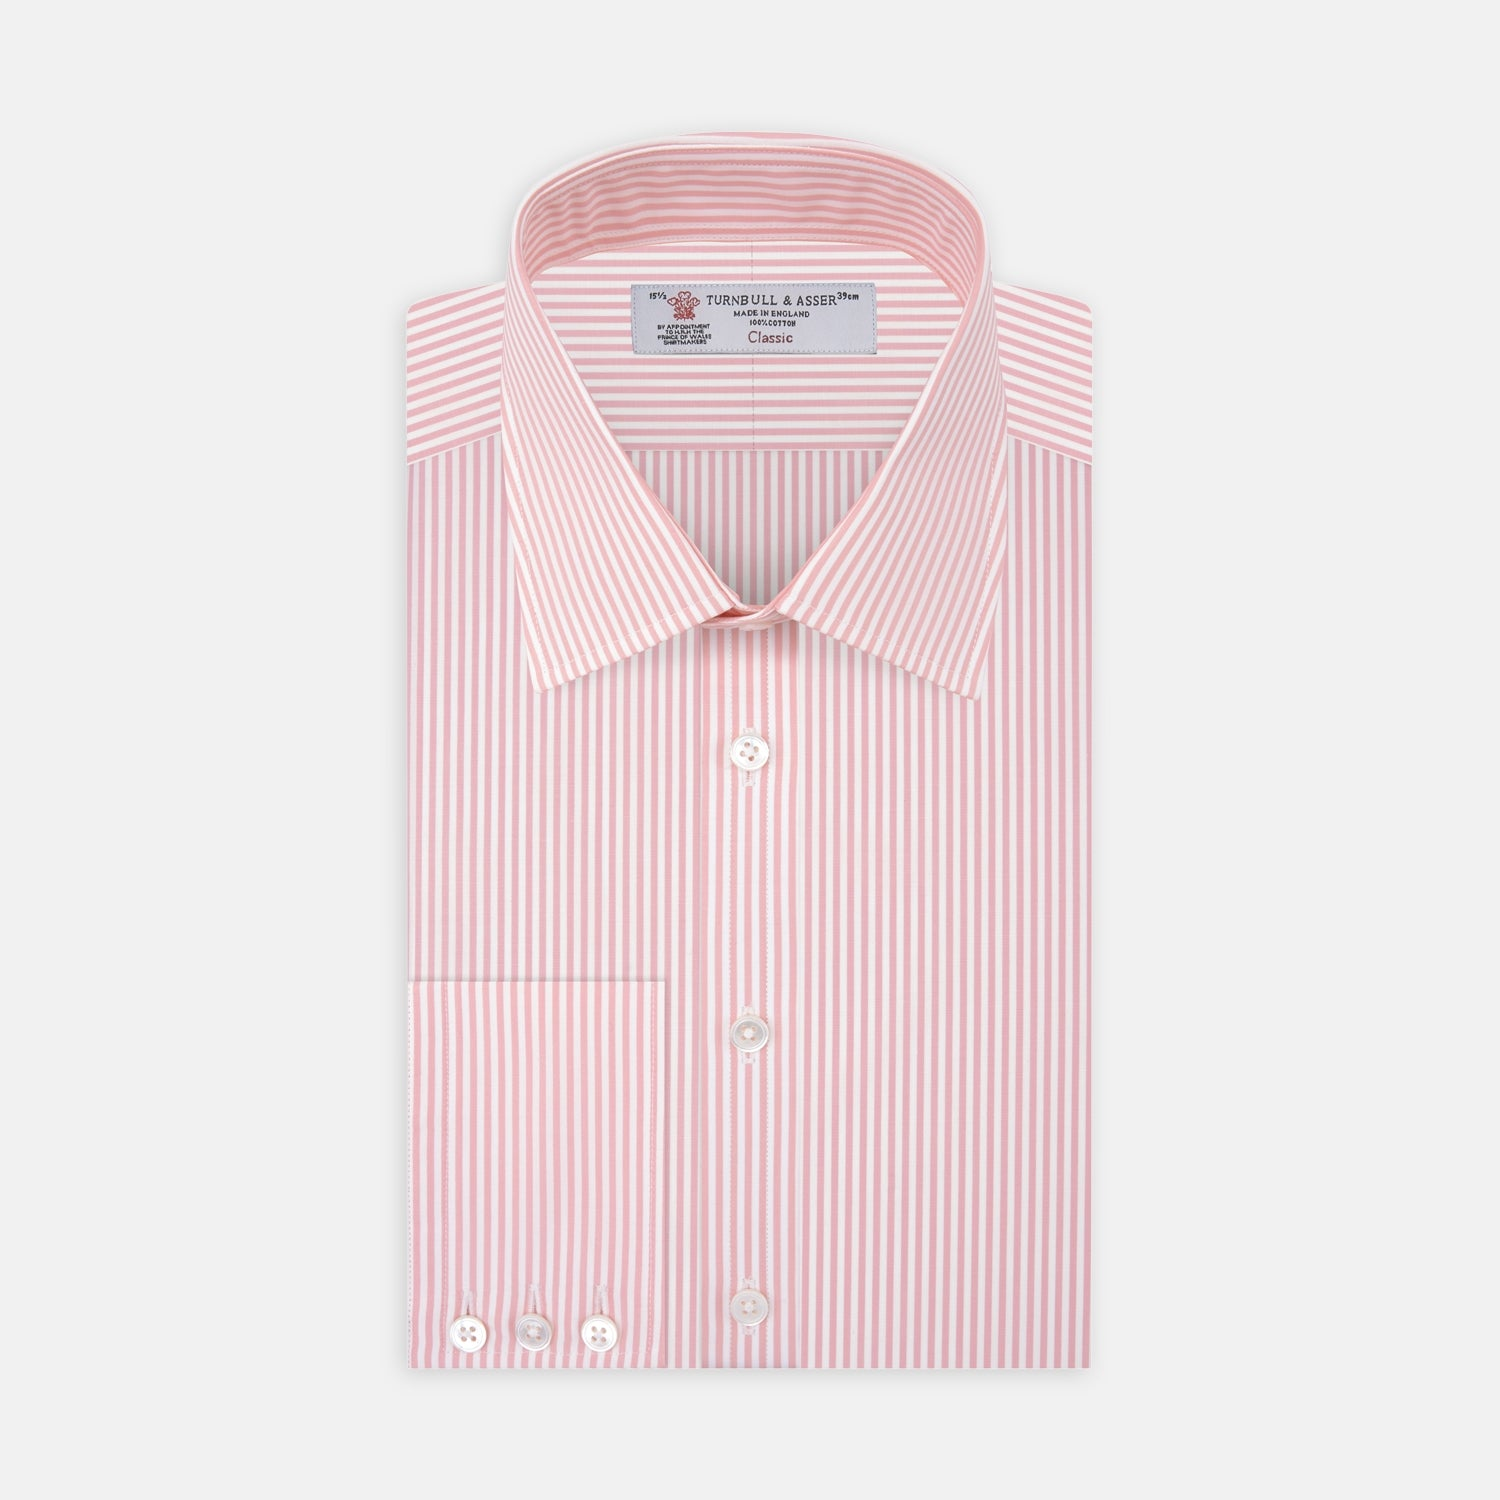 Pink Bengal Stripe Shirt with T&A Collar and 3-Button Cuffs - 19.0 from Turnbull & Asser